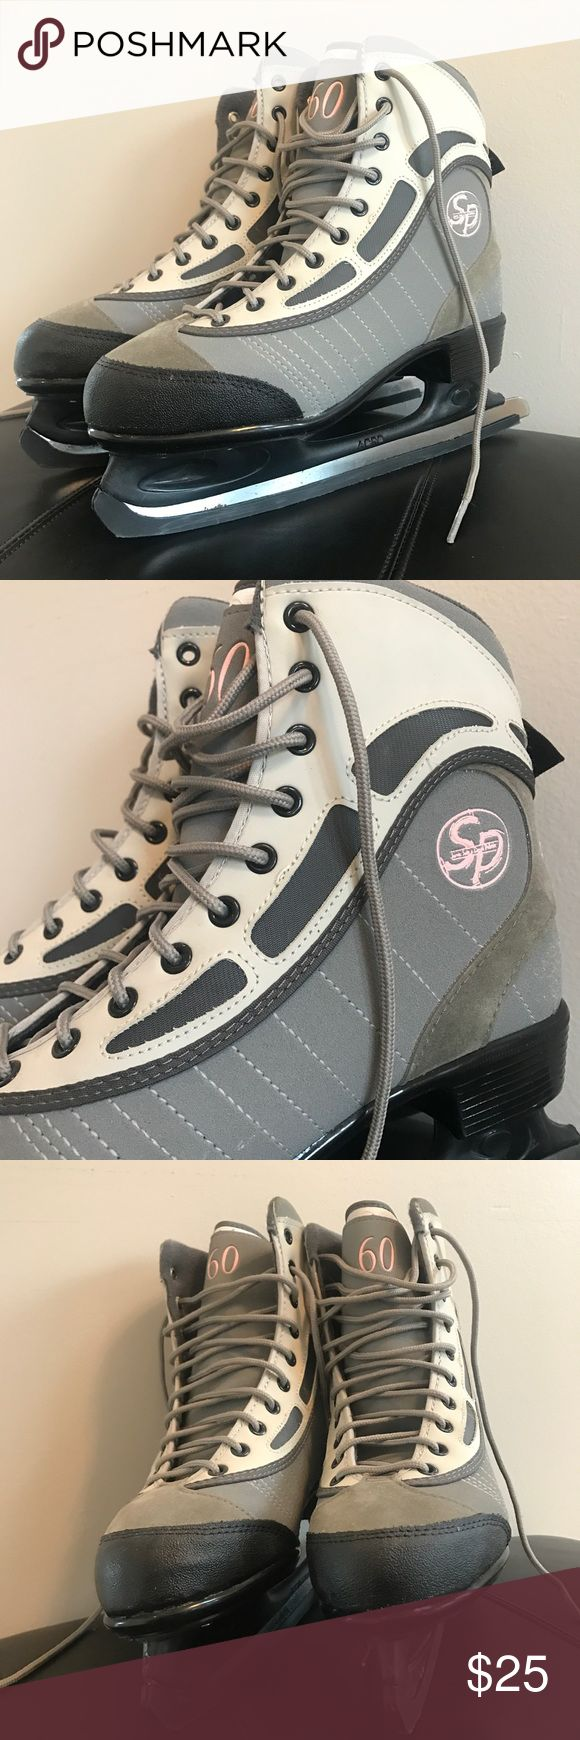 CCM SP 60 ice skates In perfect condition CCM Grey and pink figure skates. Great condition!  These were only used only once for a very short amount of time because they are three sizes too big! There are a few slight marks on the blade which may be able to be buffed out, but still sharp and the boot part is perfect. Fits true to size. Shoes Athletic Shoes